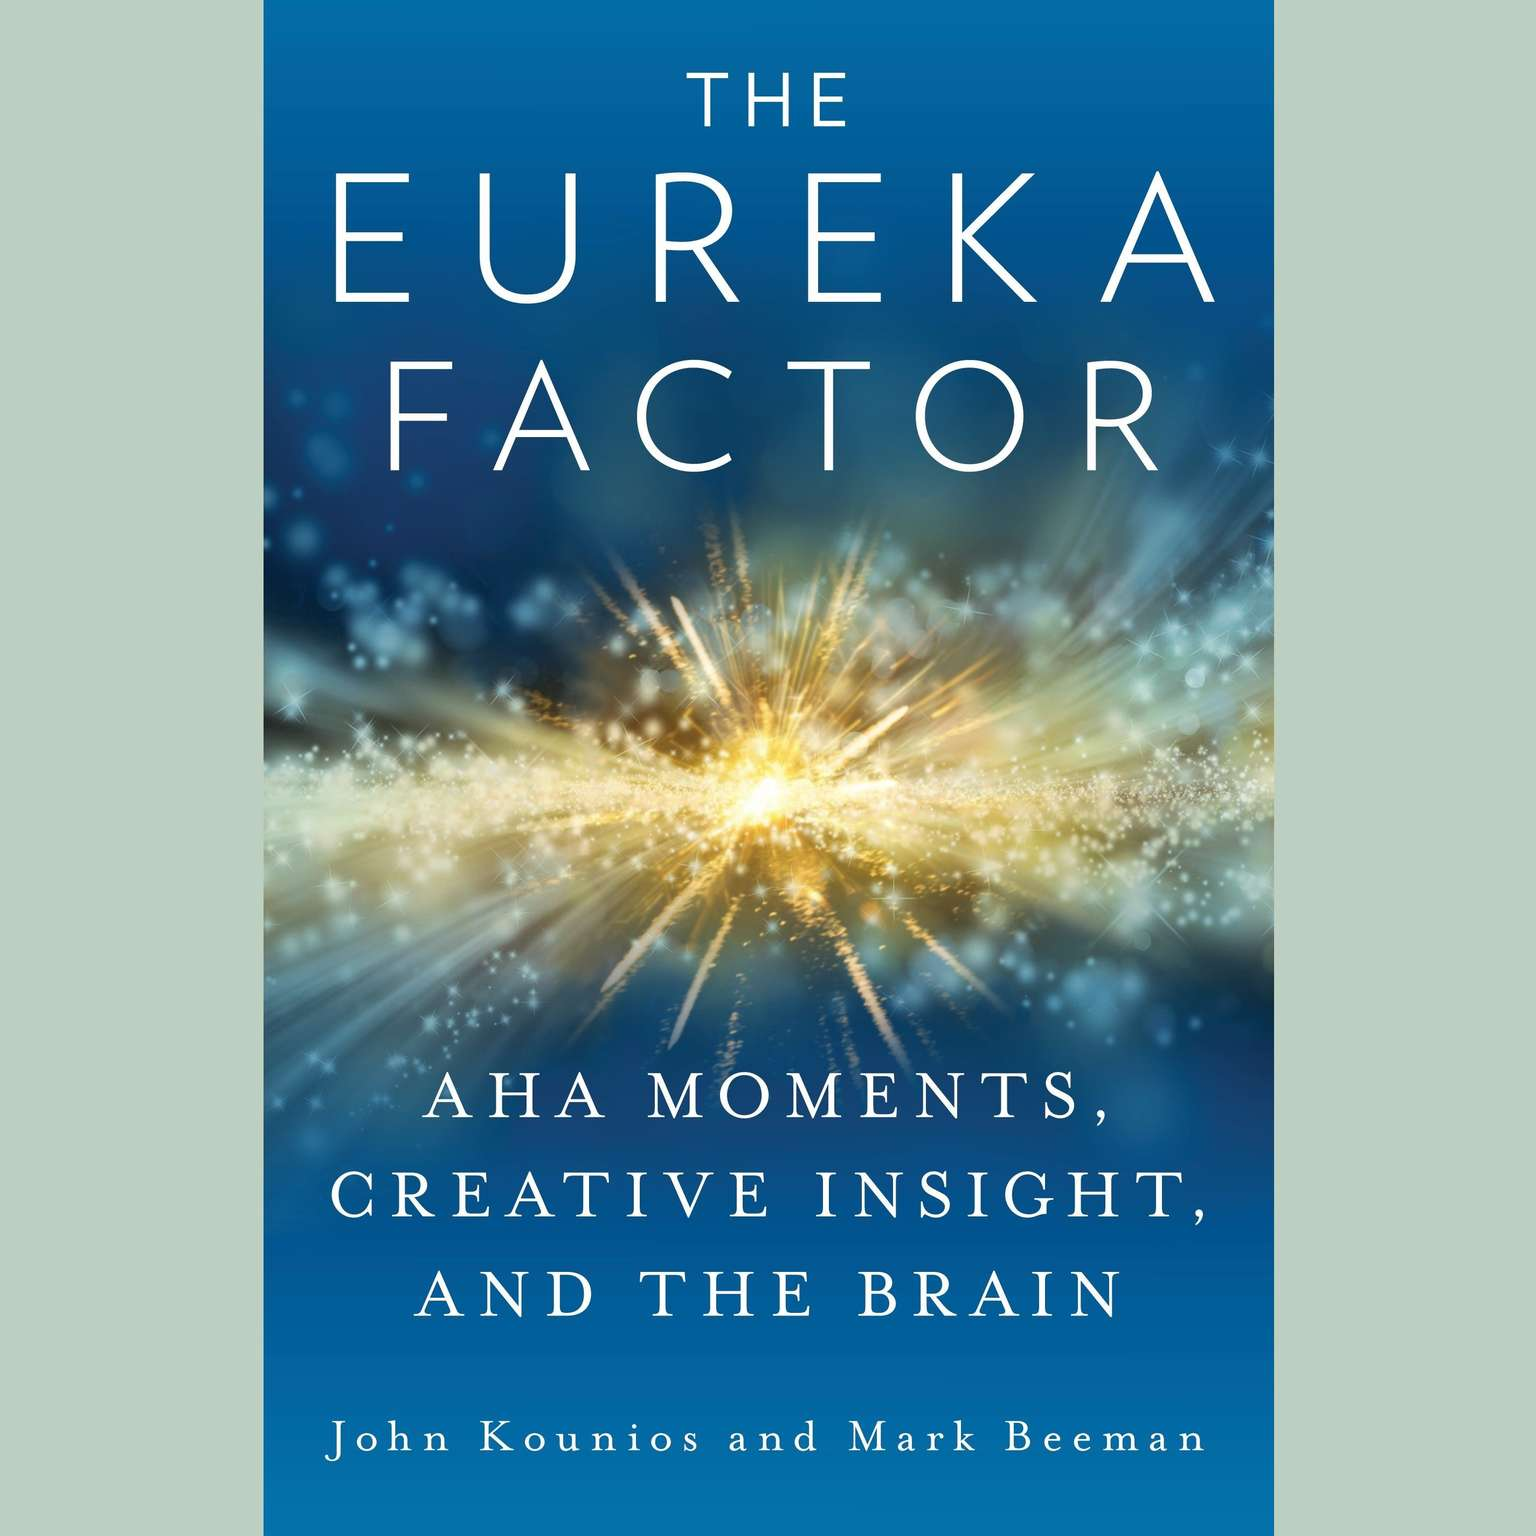 Printable The Eureka Factor : Aha Moments, Creative Insight, and the Brain  Audiobook Cover Art